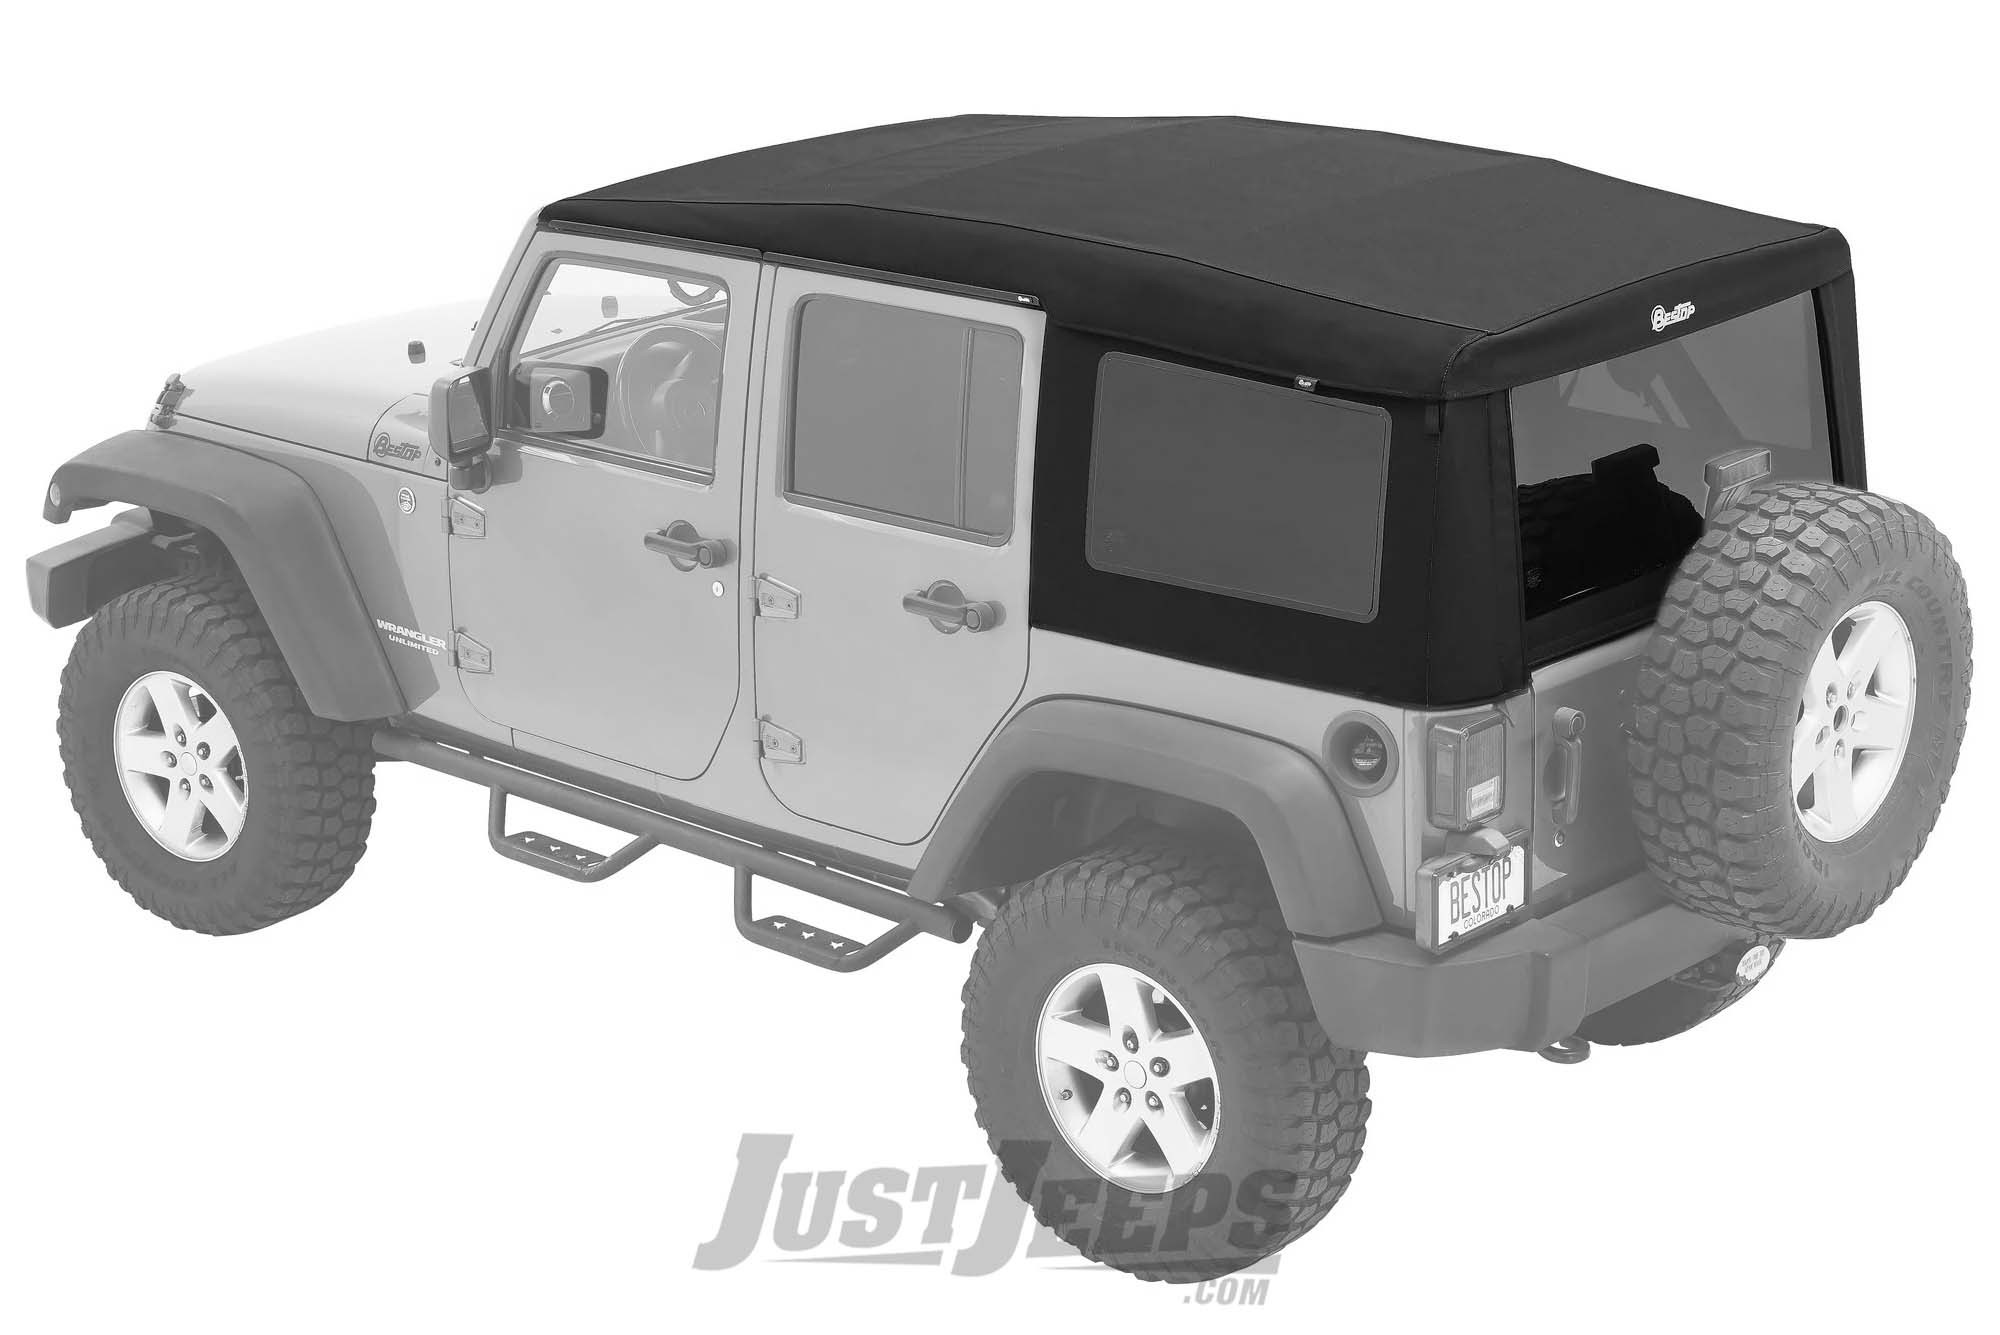 BESTOP Supertop Ultra For 2007-18 Jeep Wrangler JK Unlimited 4 Door Models